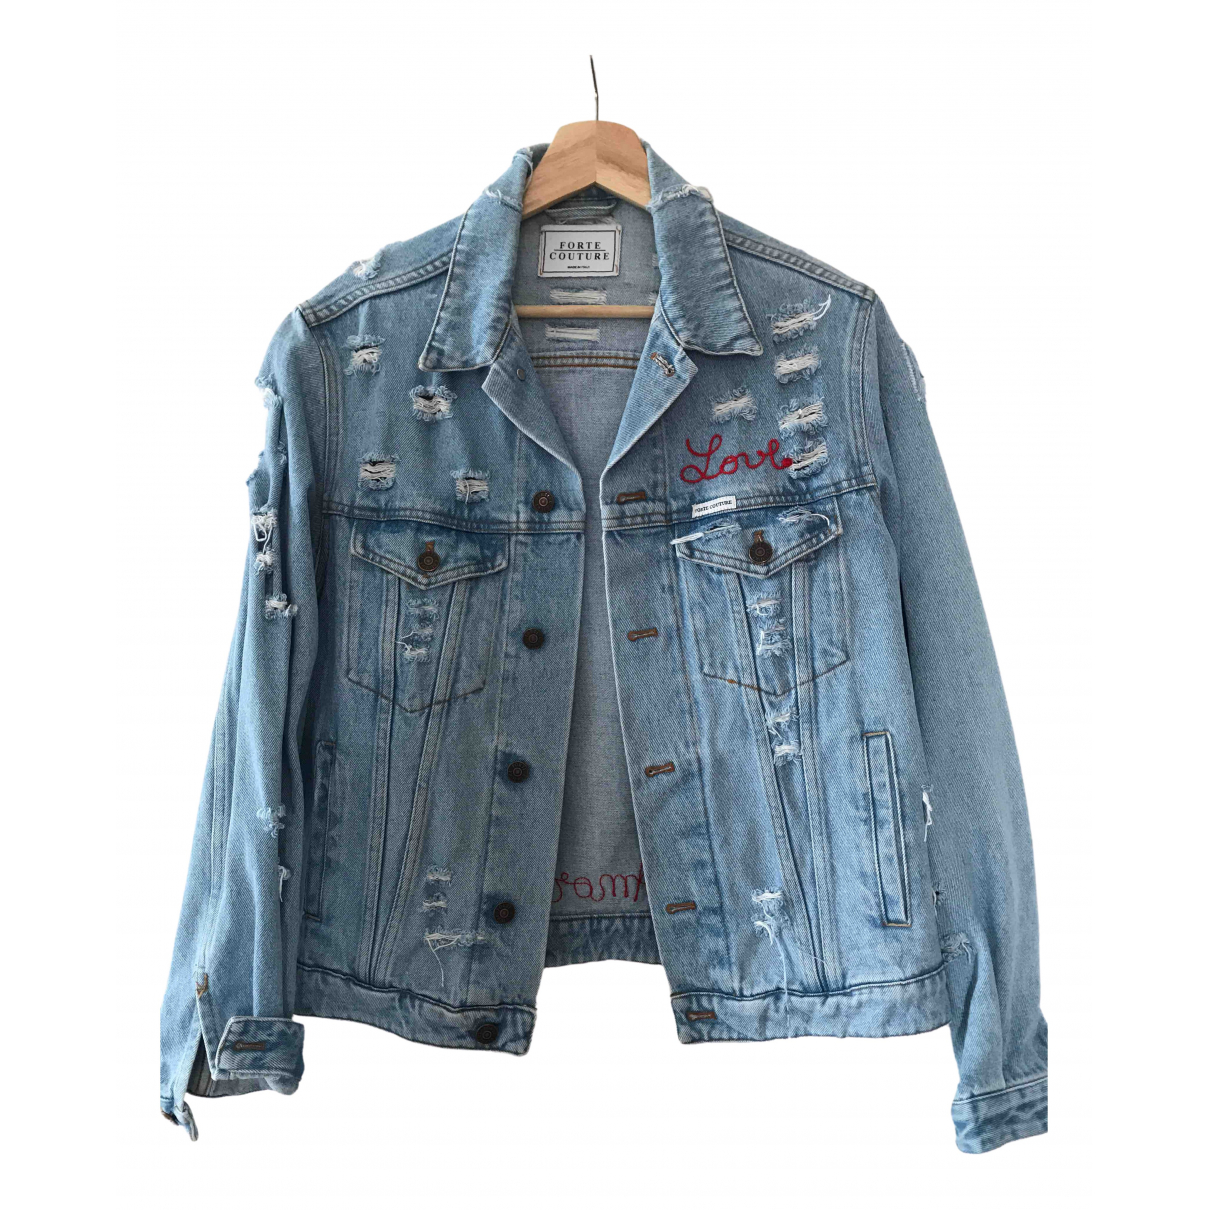 Forte Couture \N Blue Denim - Jeans jacket for Women 38 IT